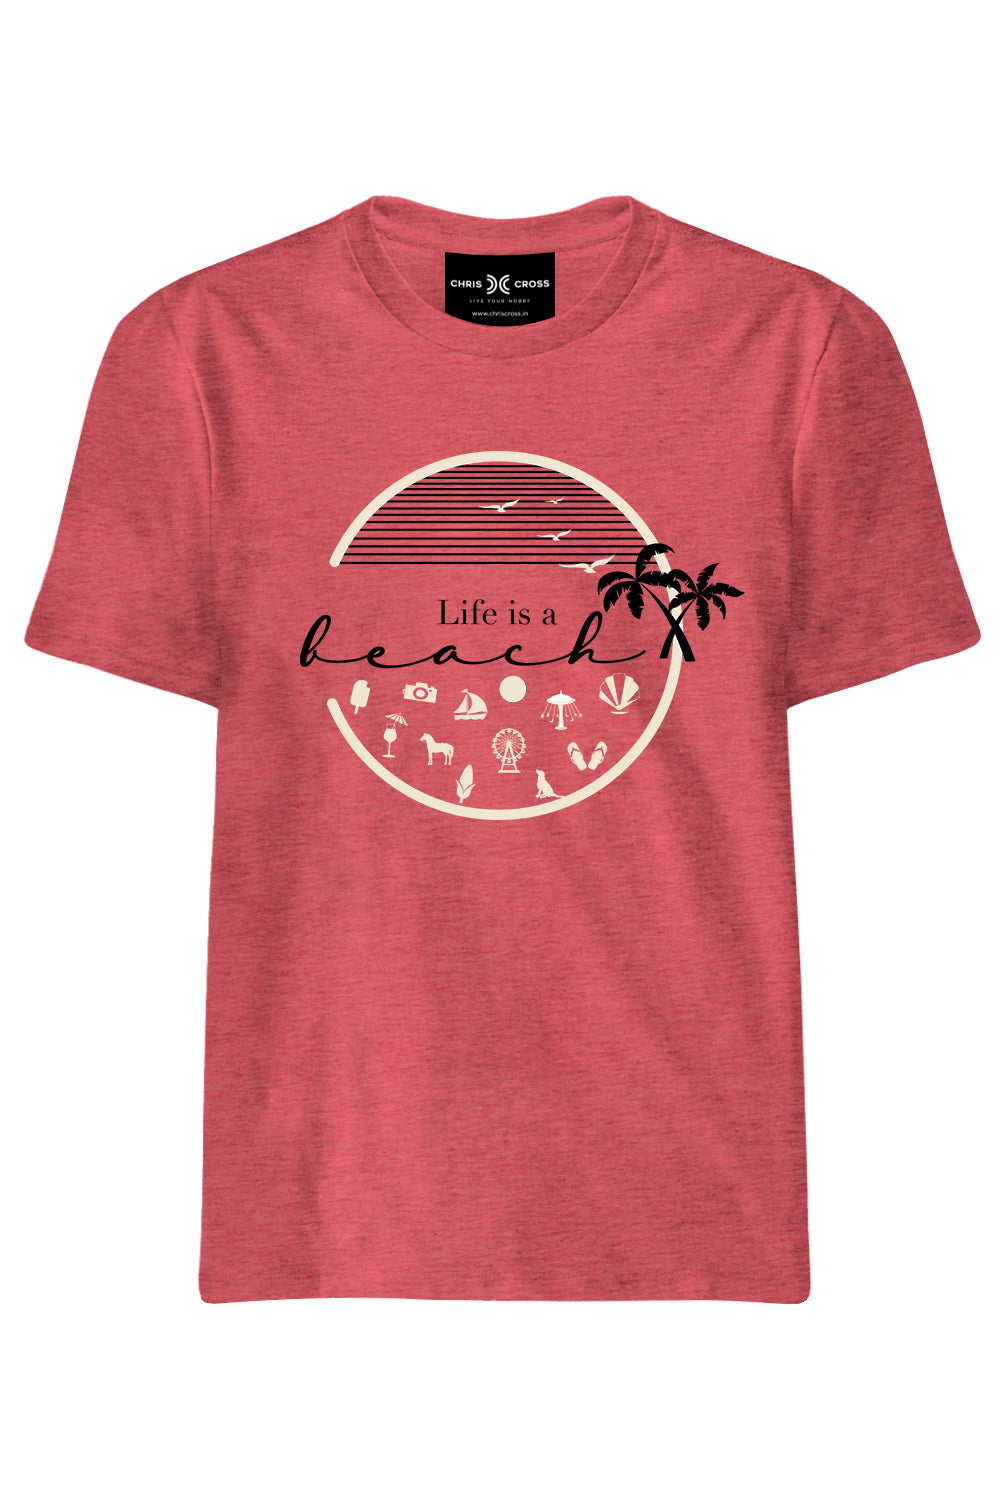 Life Is A Beach T Shirt - ChrisCross.in